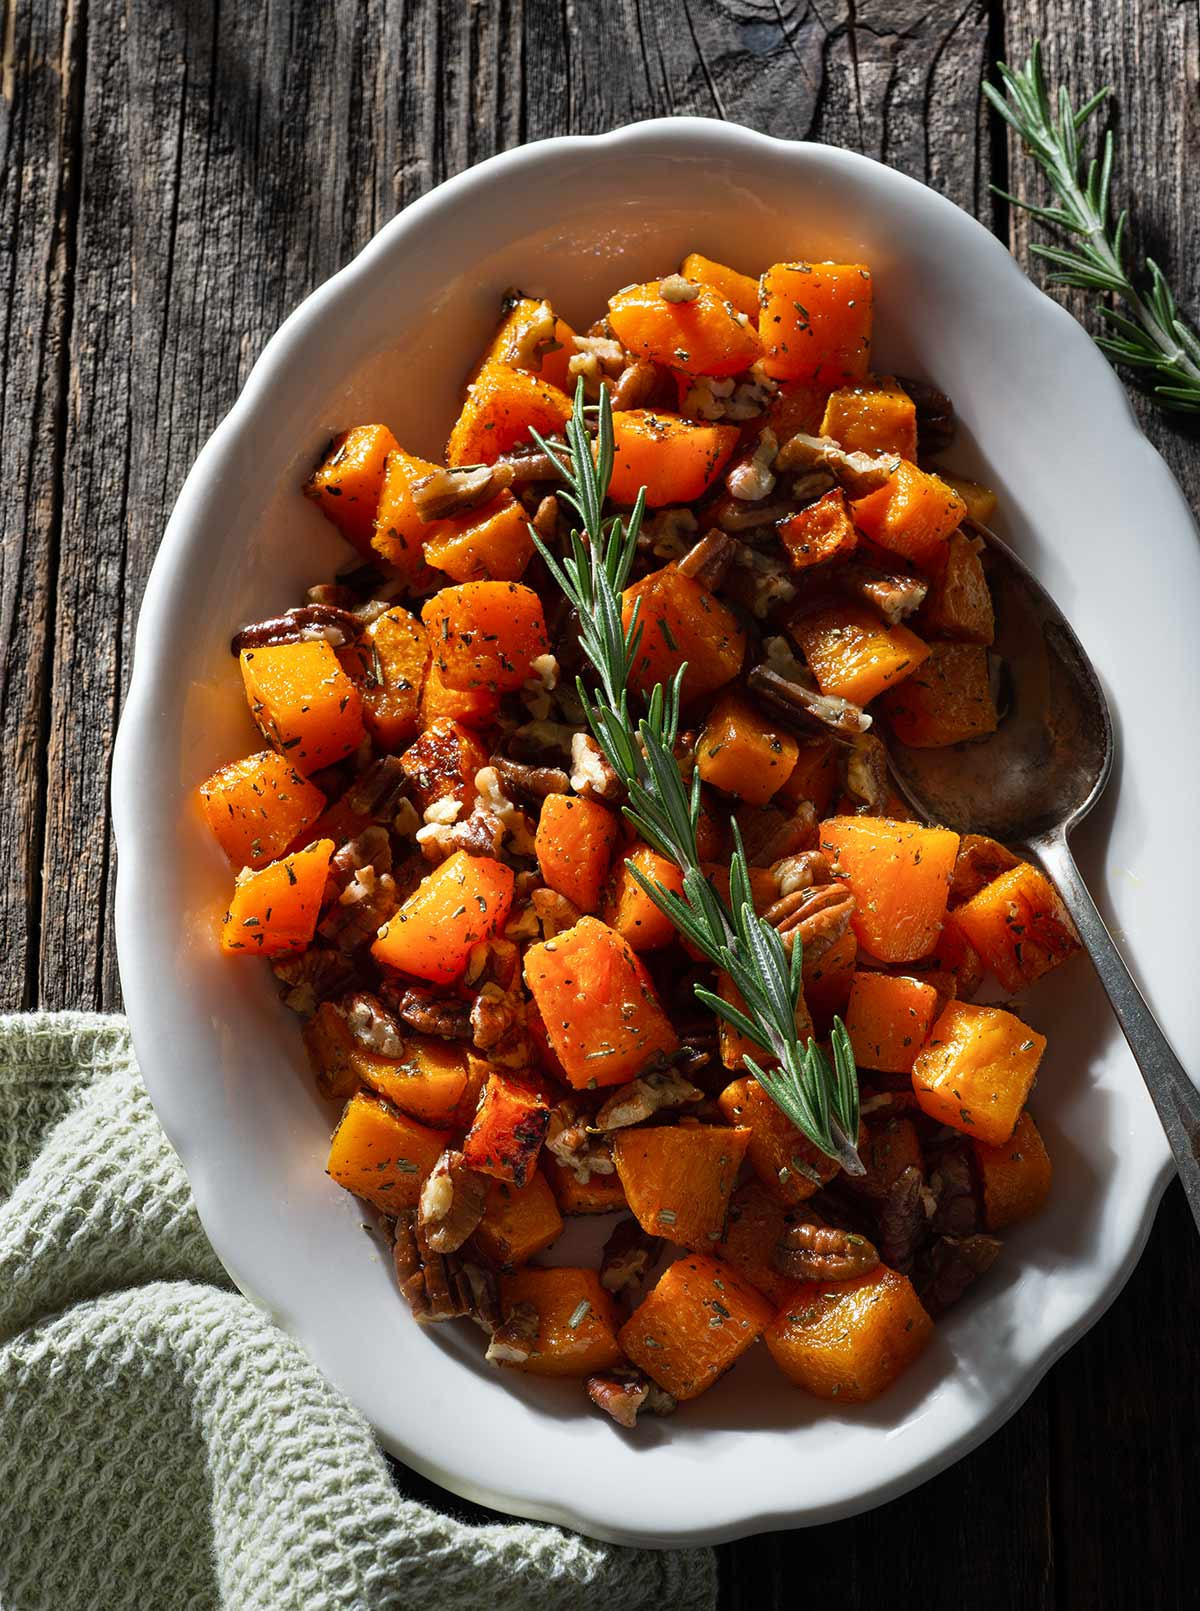 Roasted butternut squash with rosemary and pecans on a serving plate.